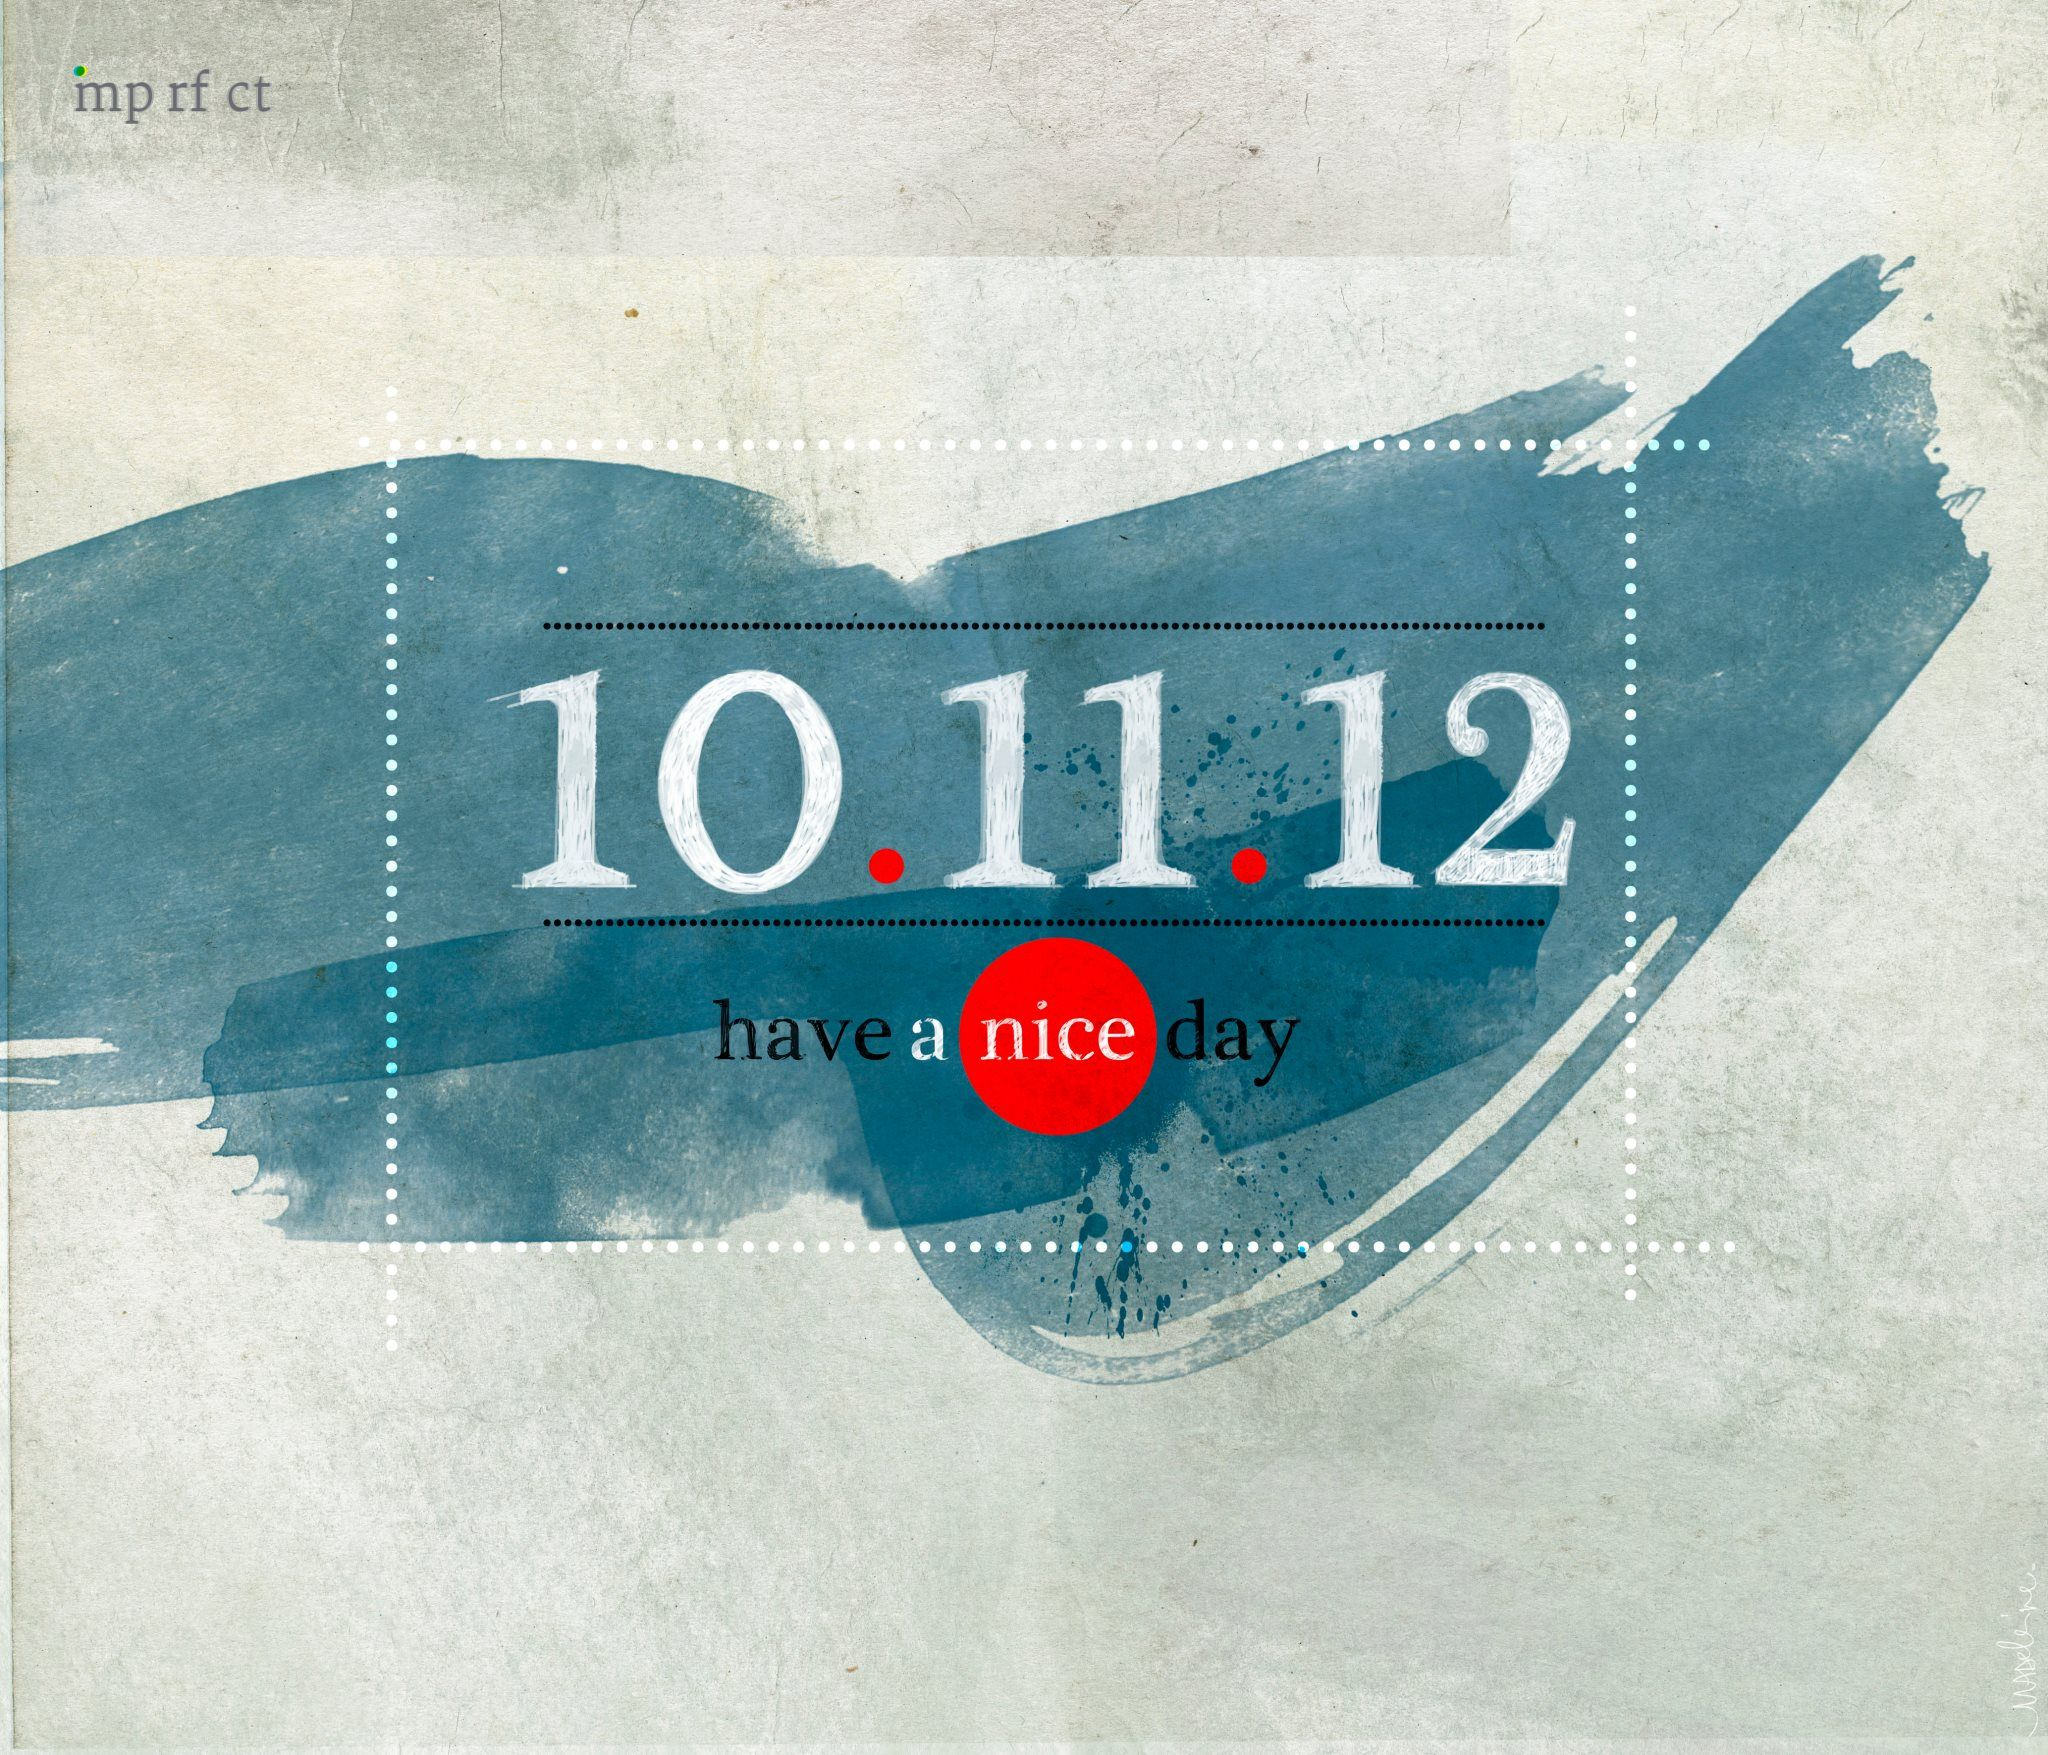 10 11 12 | Have a nice day